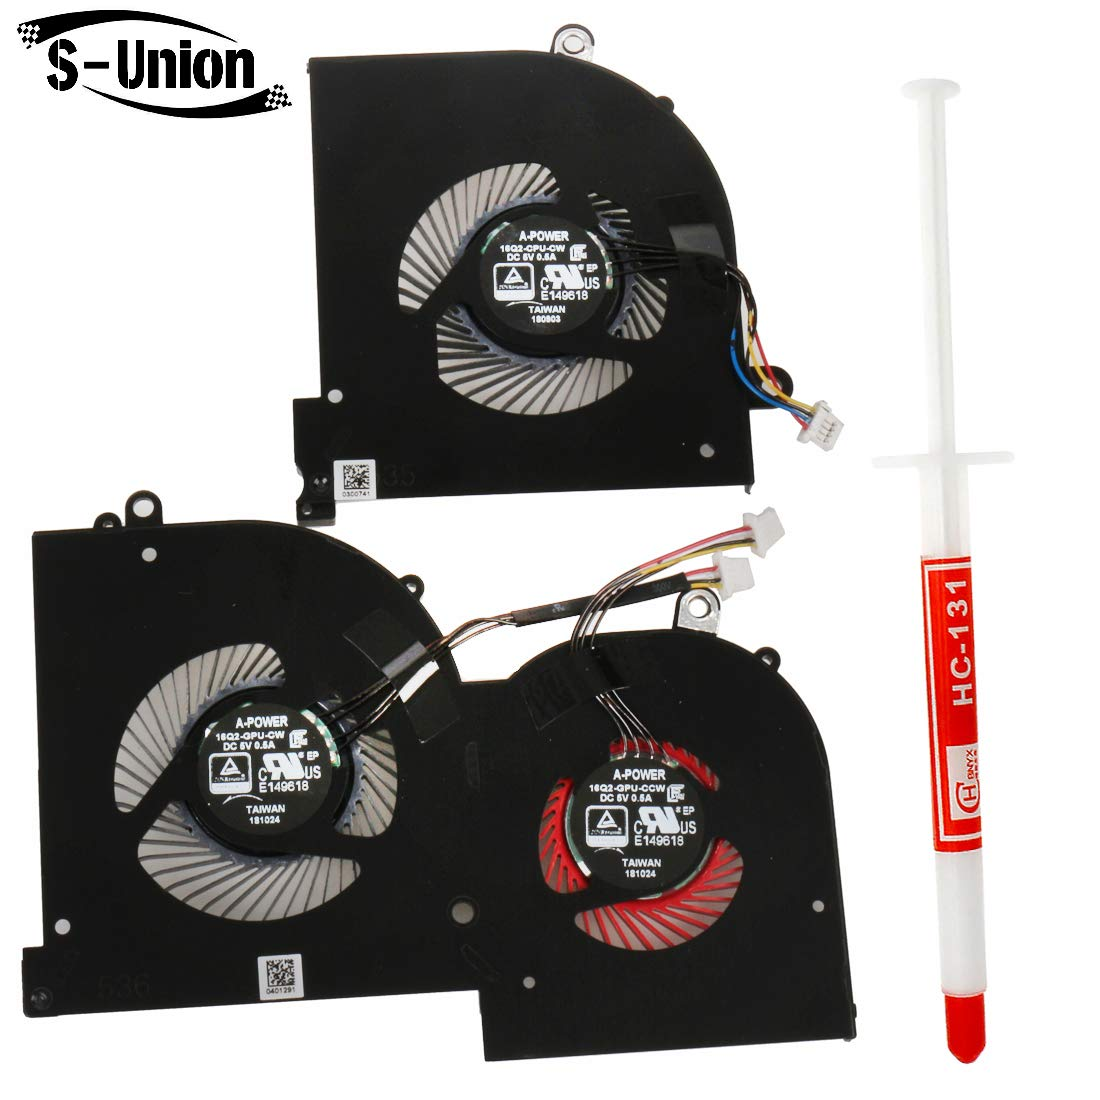 S-Union New Laptop Replacement CPU Cooling Fan for MSI GS65 GS65VR Series Laptop MS-16Q2 16Q2-CPU-CW 16Q2-GPU-CW